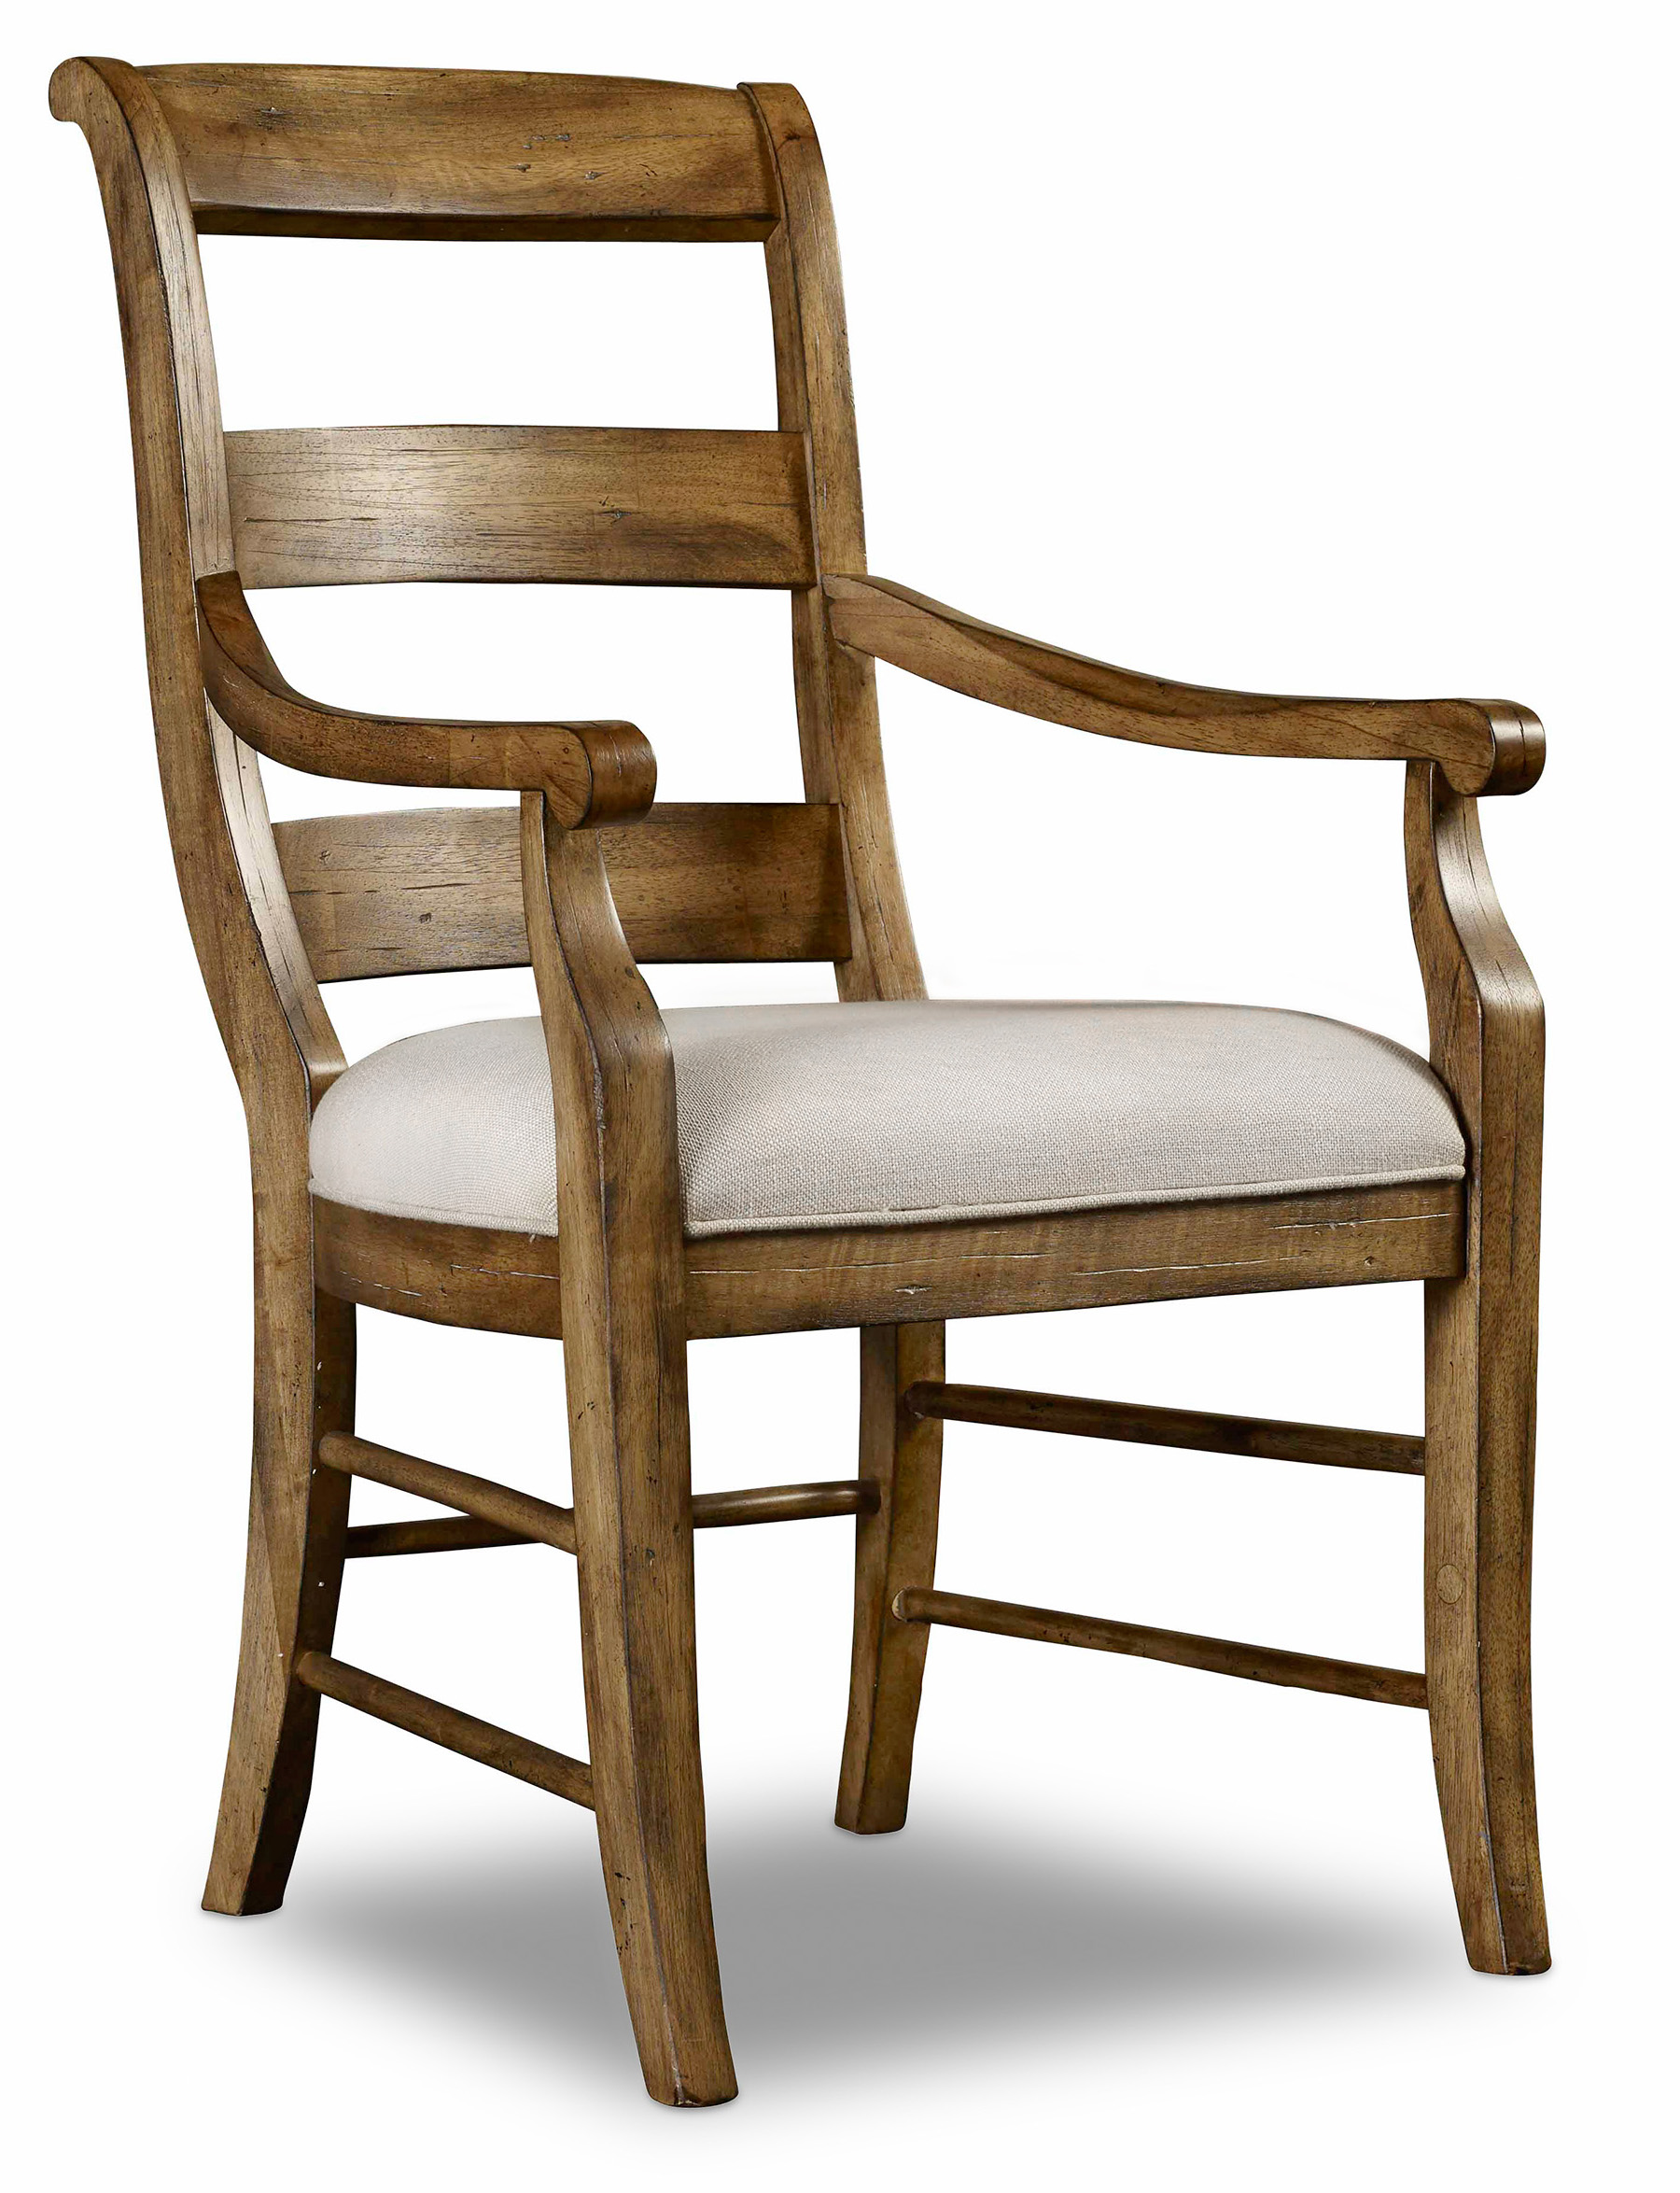 Hooker Furniture Archivist Ladderback Arm Chair - Item Number: 5447-75700-TOFFEE